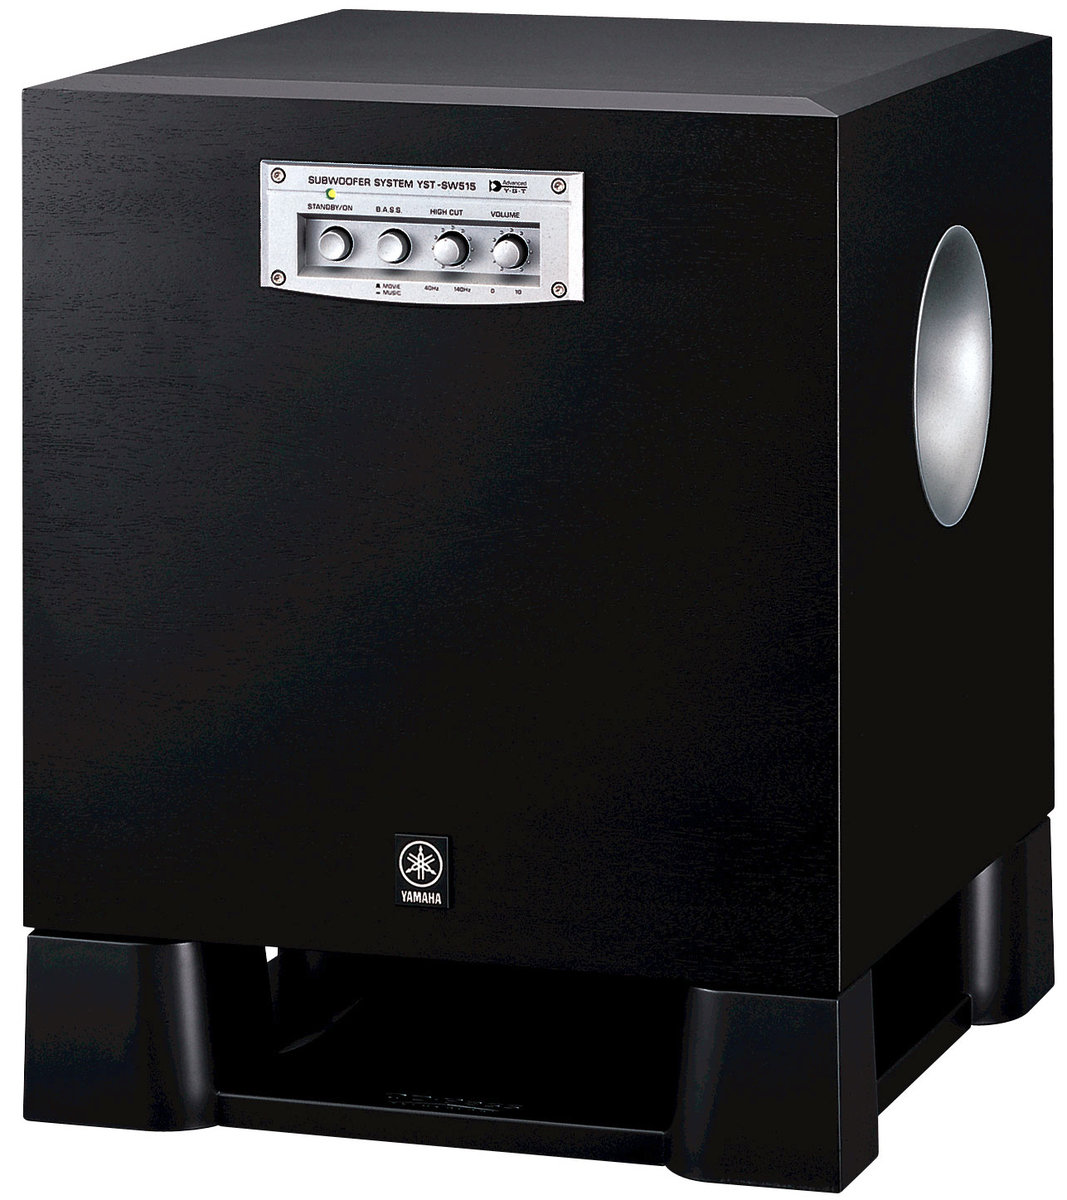 yamaha yst sw515 caissons de basses son vid. Black Bedroom Furniture Sets. Home Design Ideas